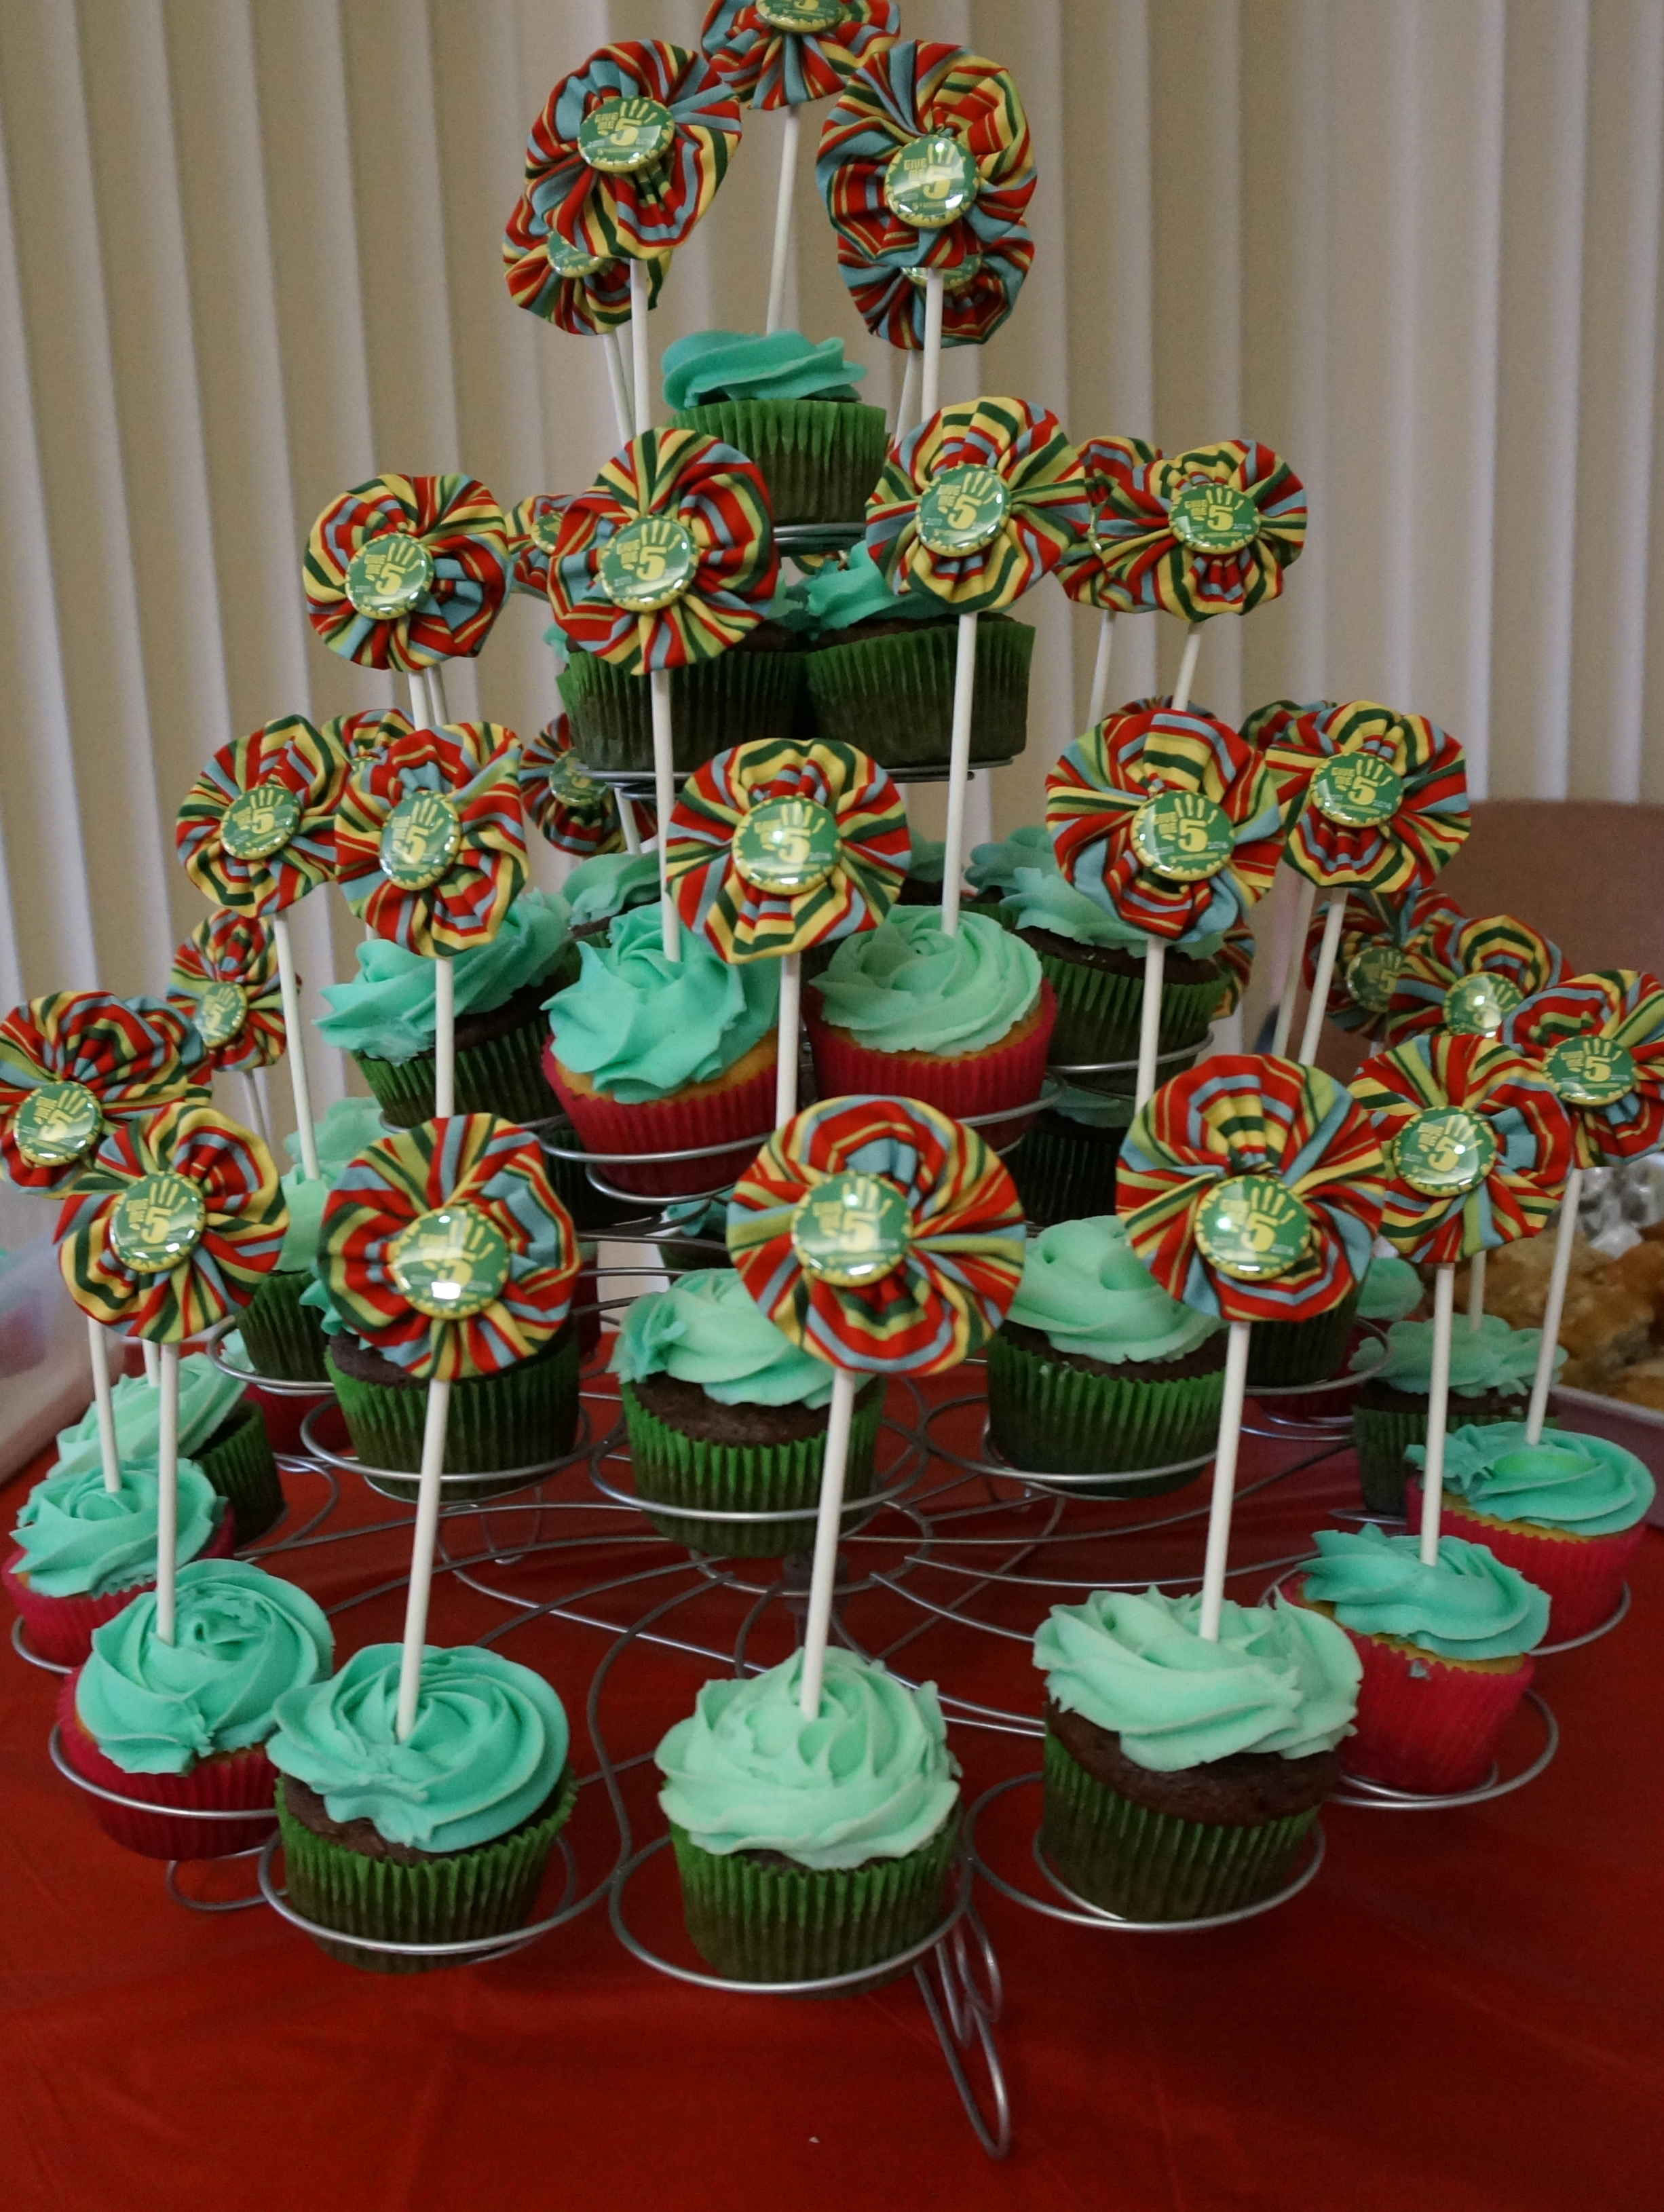 Tower of celebration cupcakes